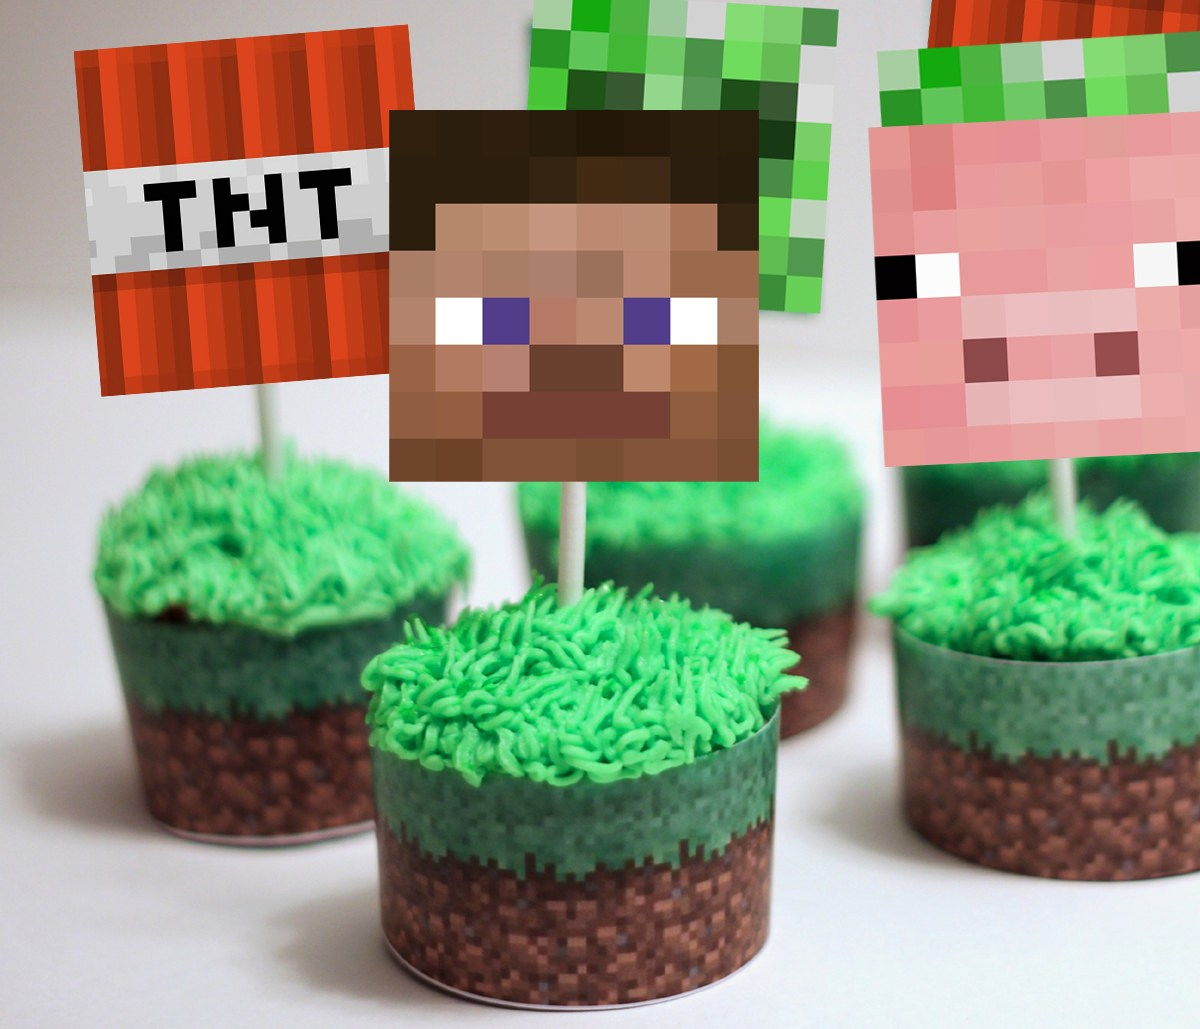 Minecraft Cupcake Toppers & Wrappers - Magical Printable - Free Printable Minecraft Cupcake Toppers And Wrappers